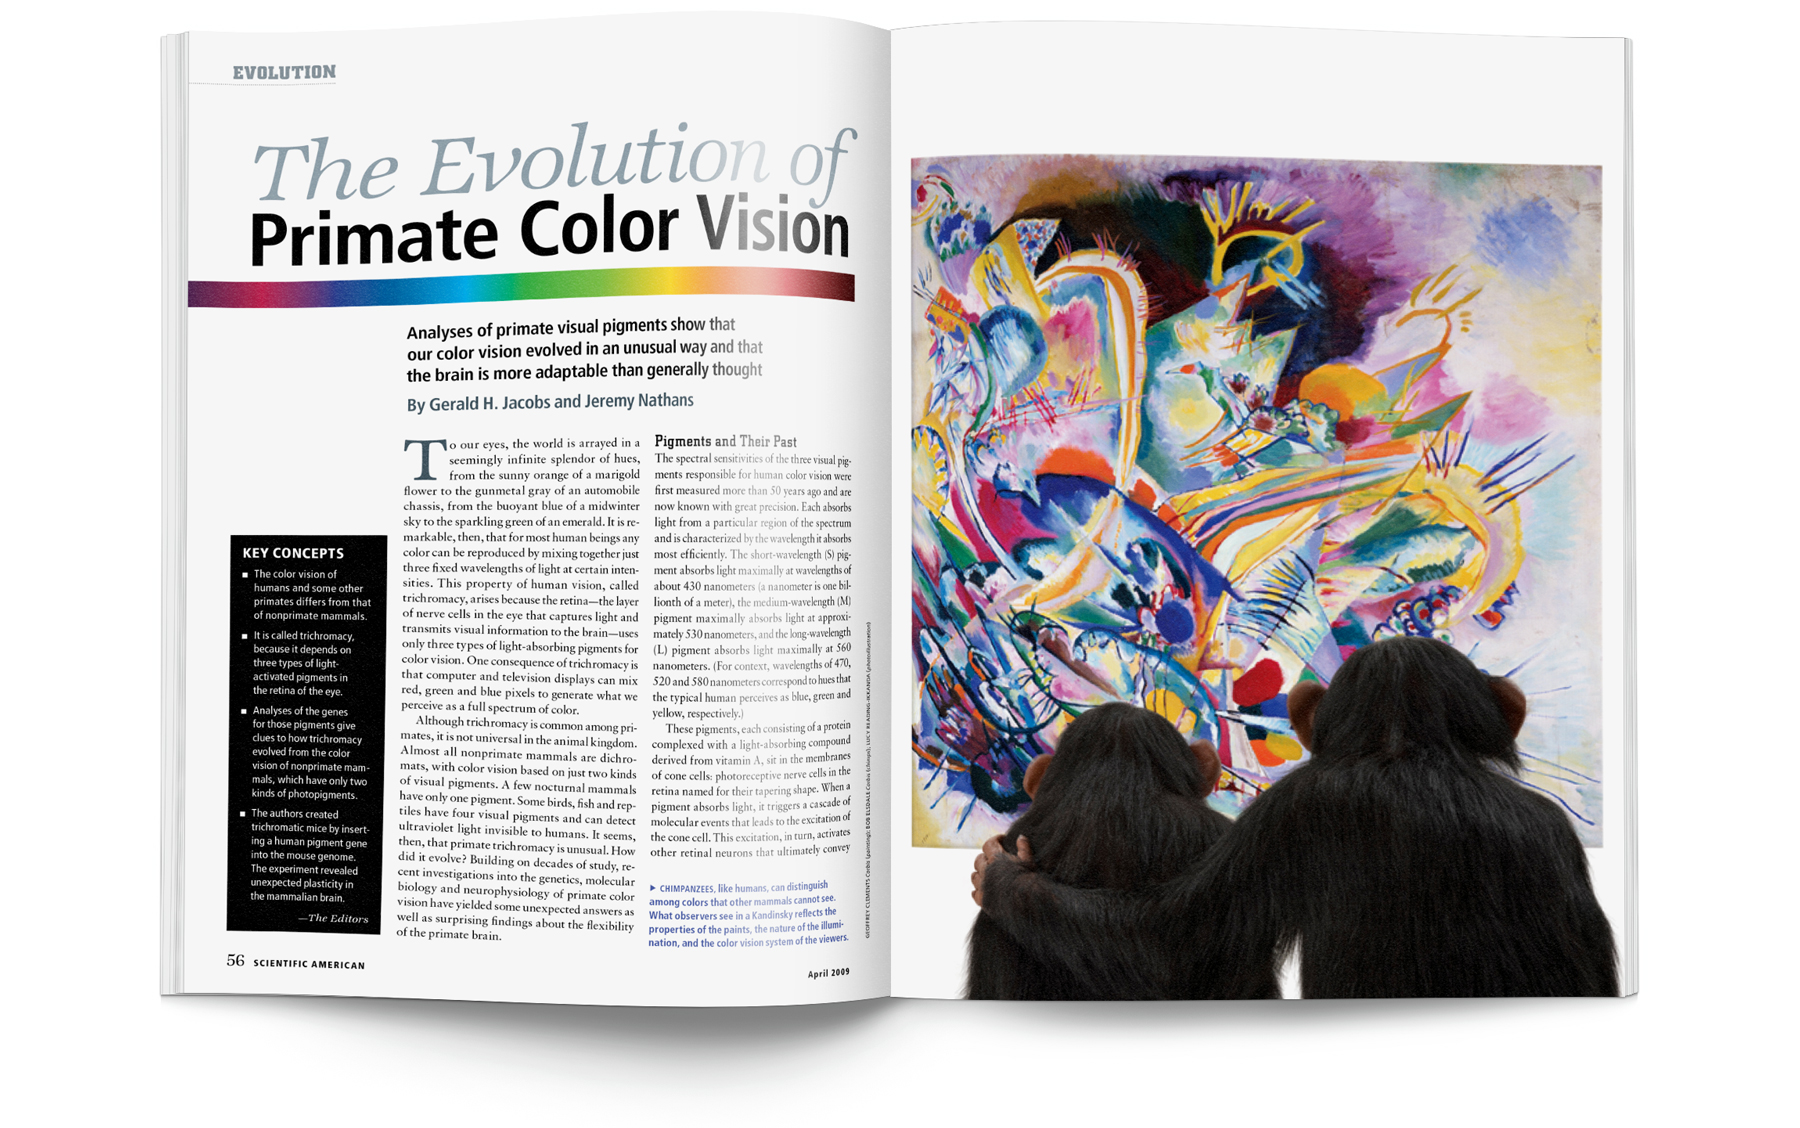 Color vision art - Project Design And Layout Article Photo Composition Of Opener Illustration Commission And Art Direct Eyeball Diagram Second Spread Illustrate Simple